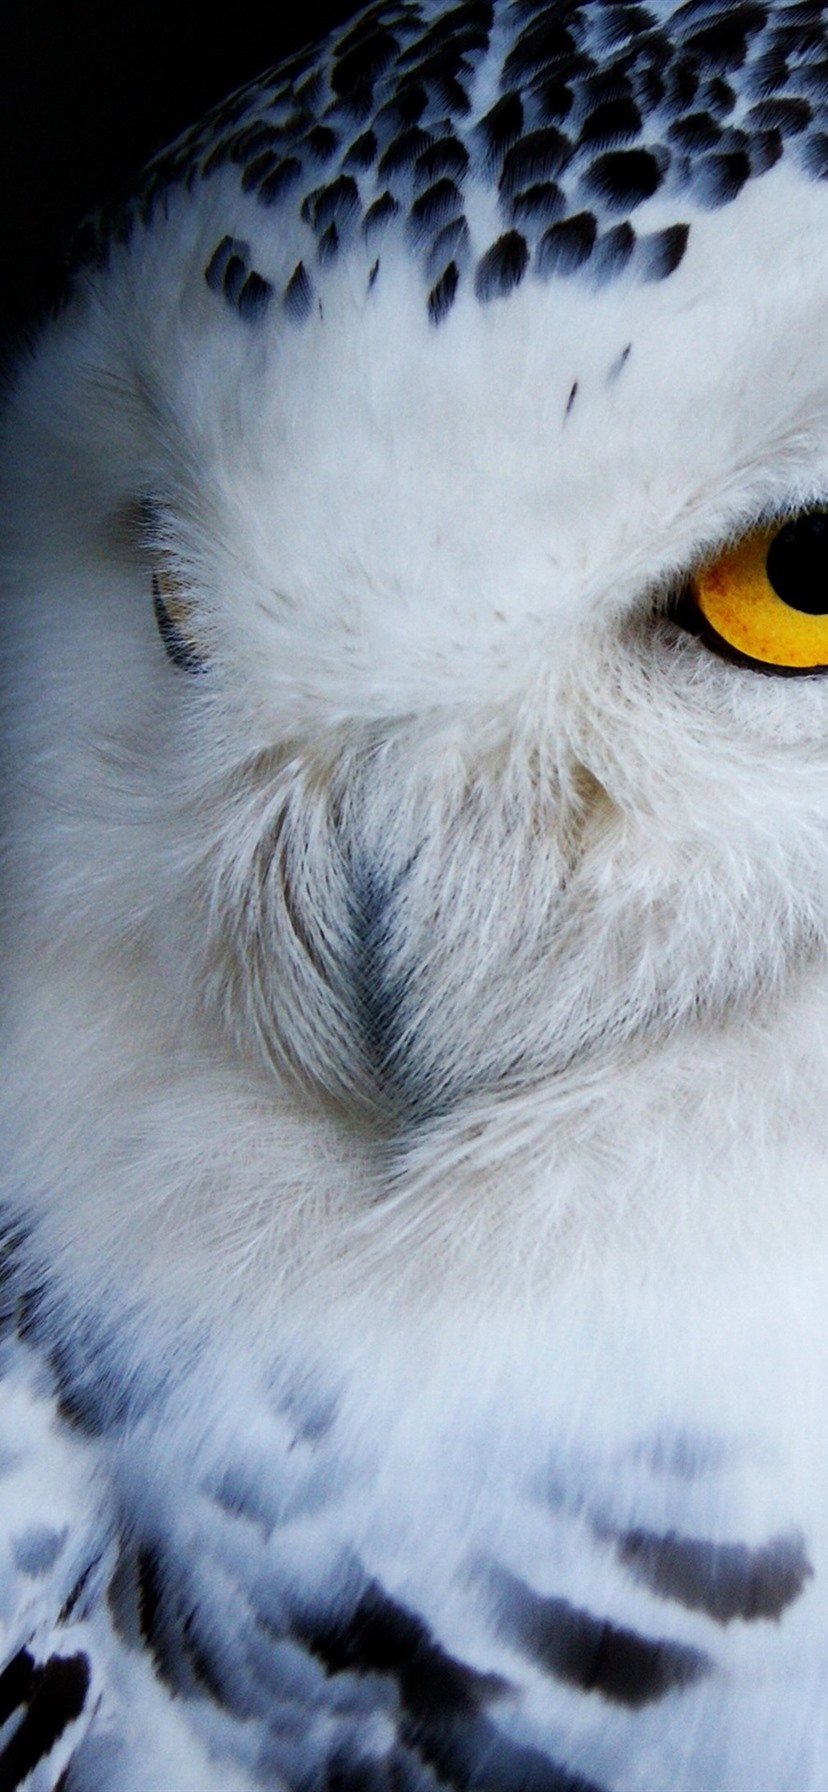 Wallpaper Owl Front View Black Background 3840x2160 Uhd 4k